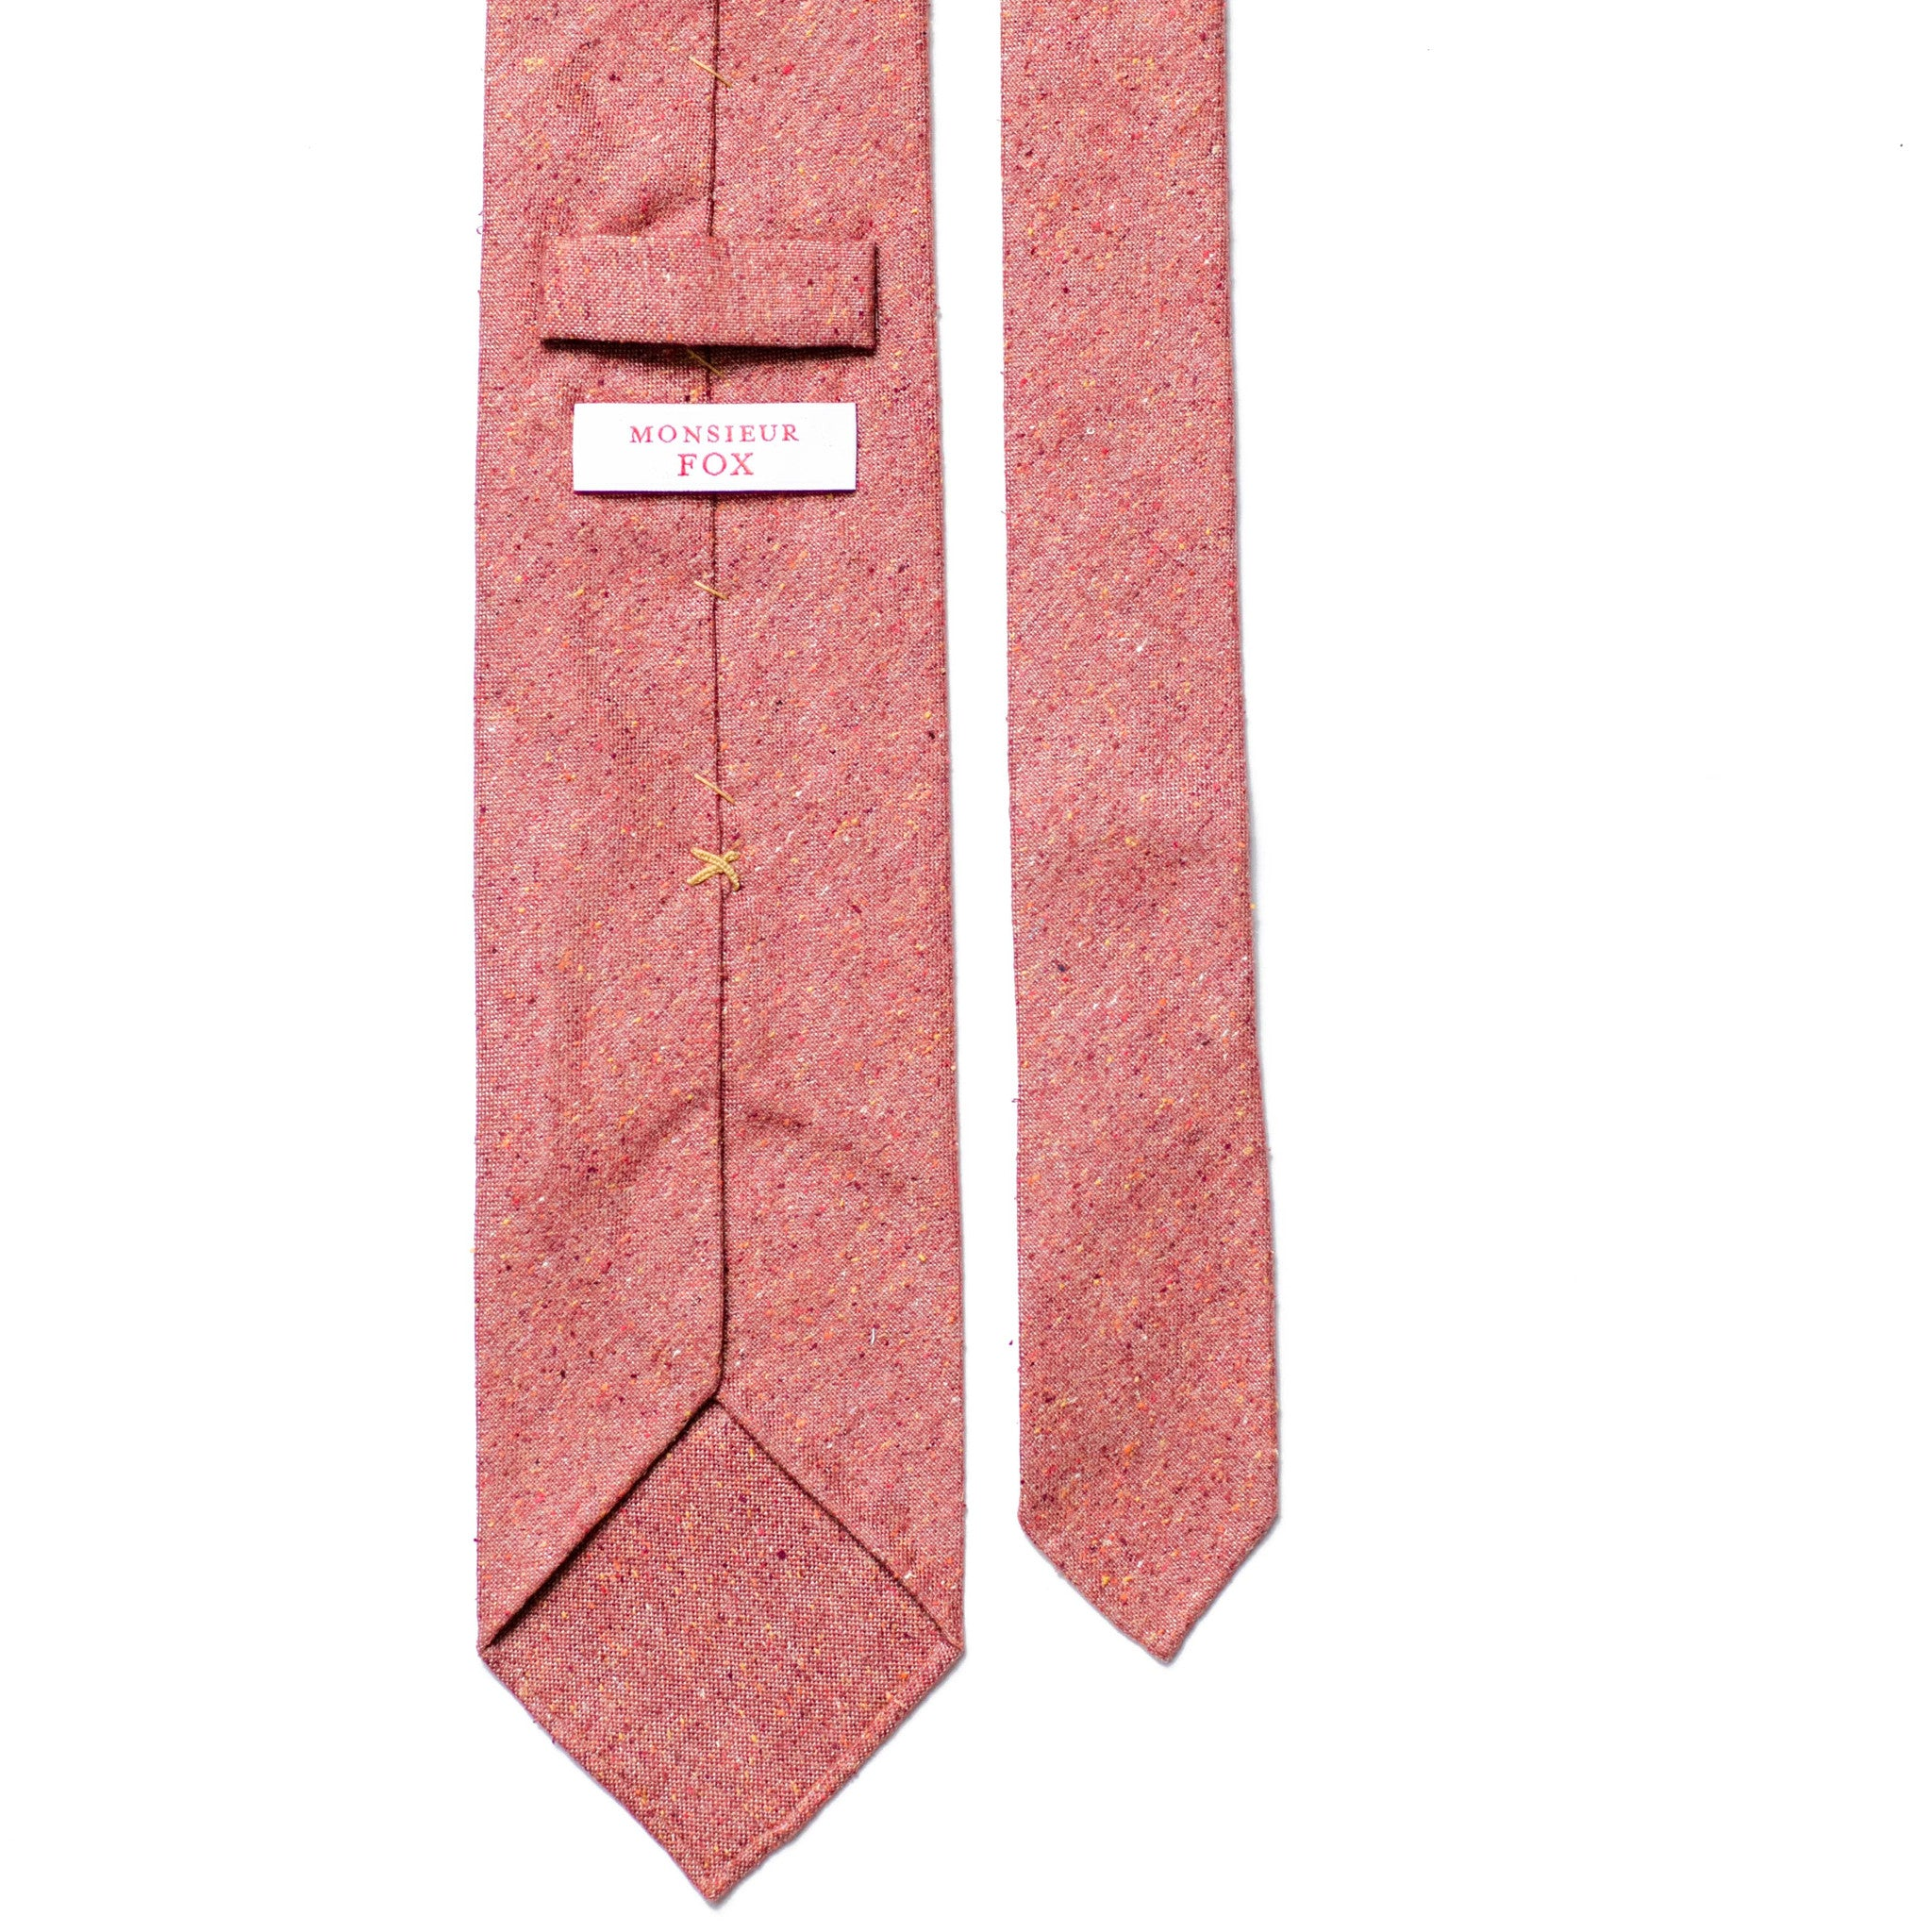 Speckled Brick Red Silk and Cotton Tie